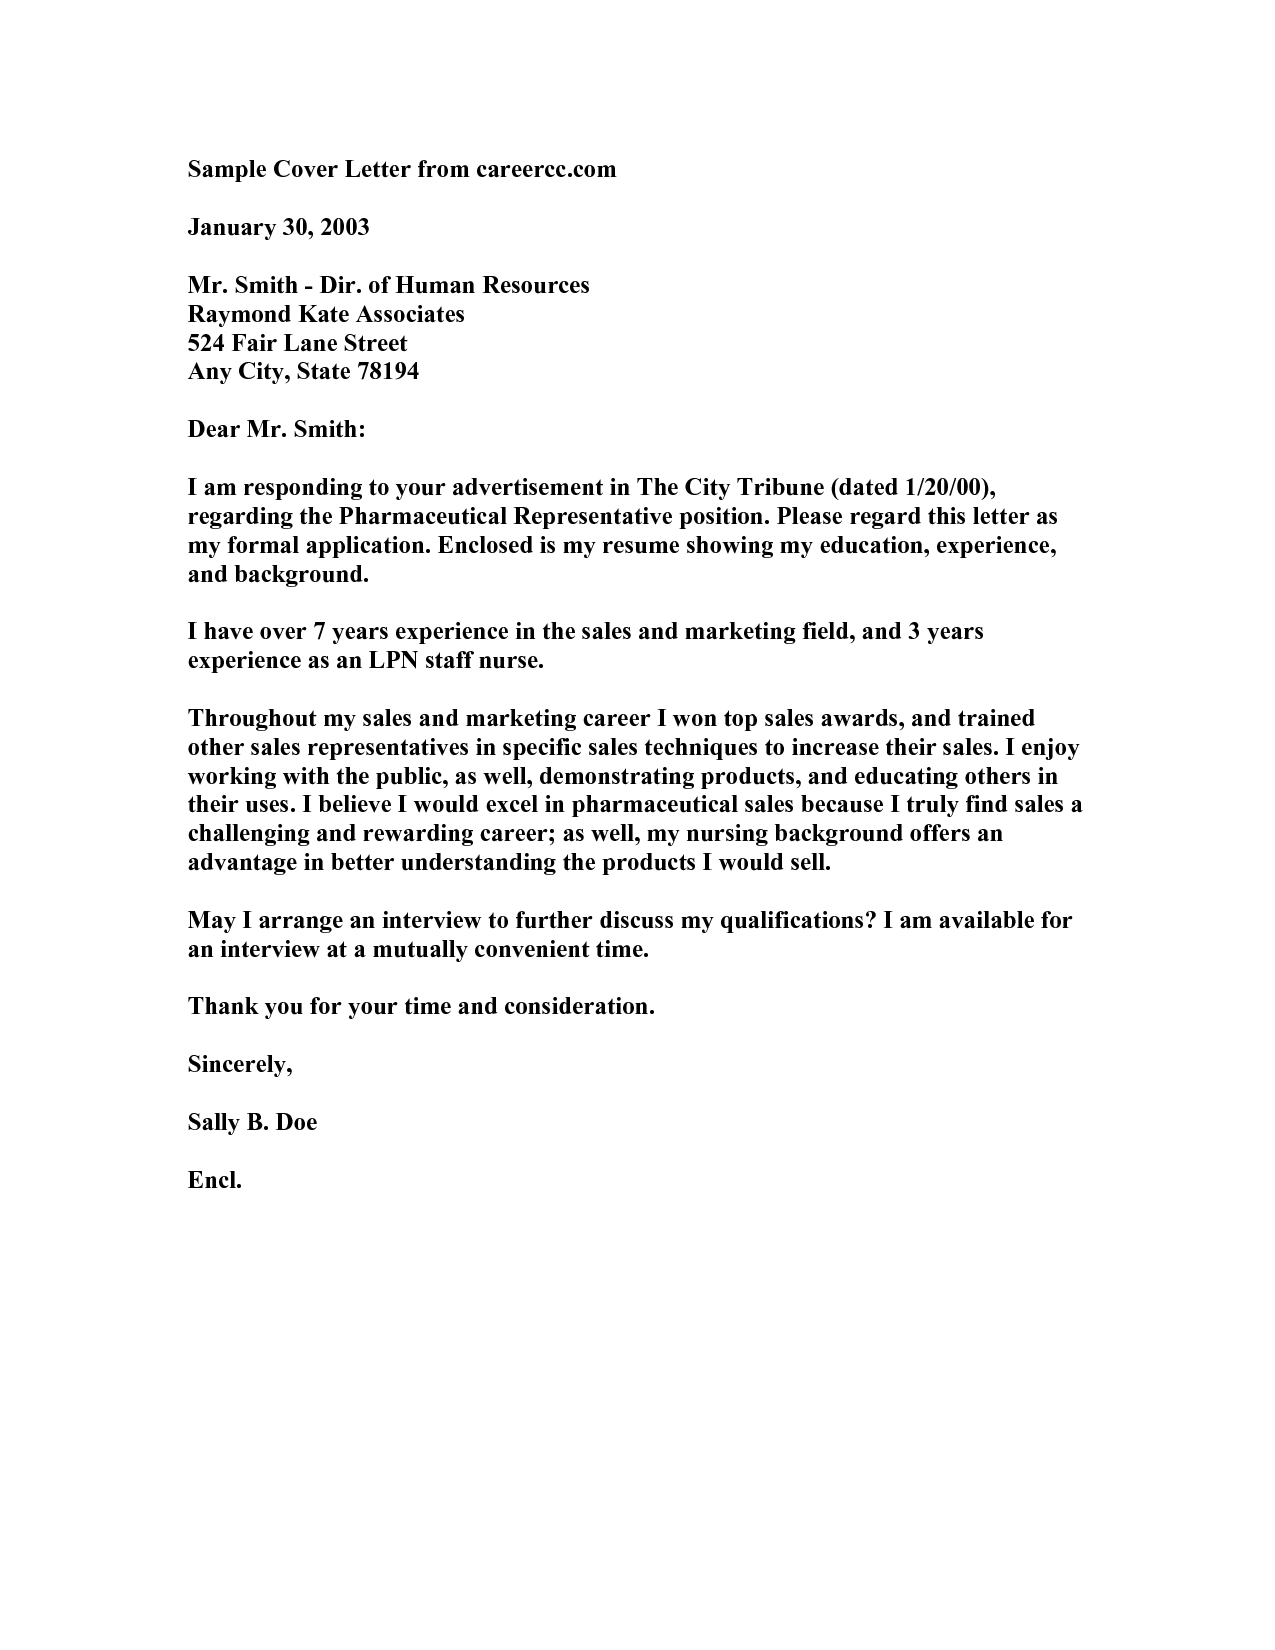 New grad nurse cover letter example lpn cover letter for Sample cover letter for lpn position